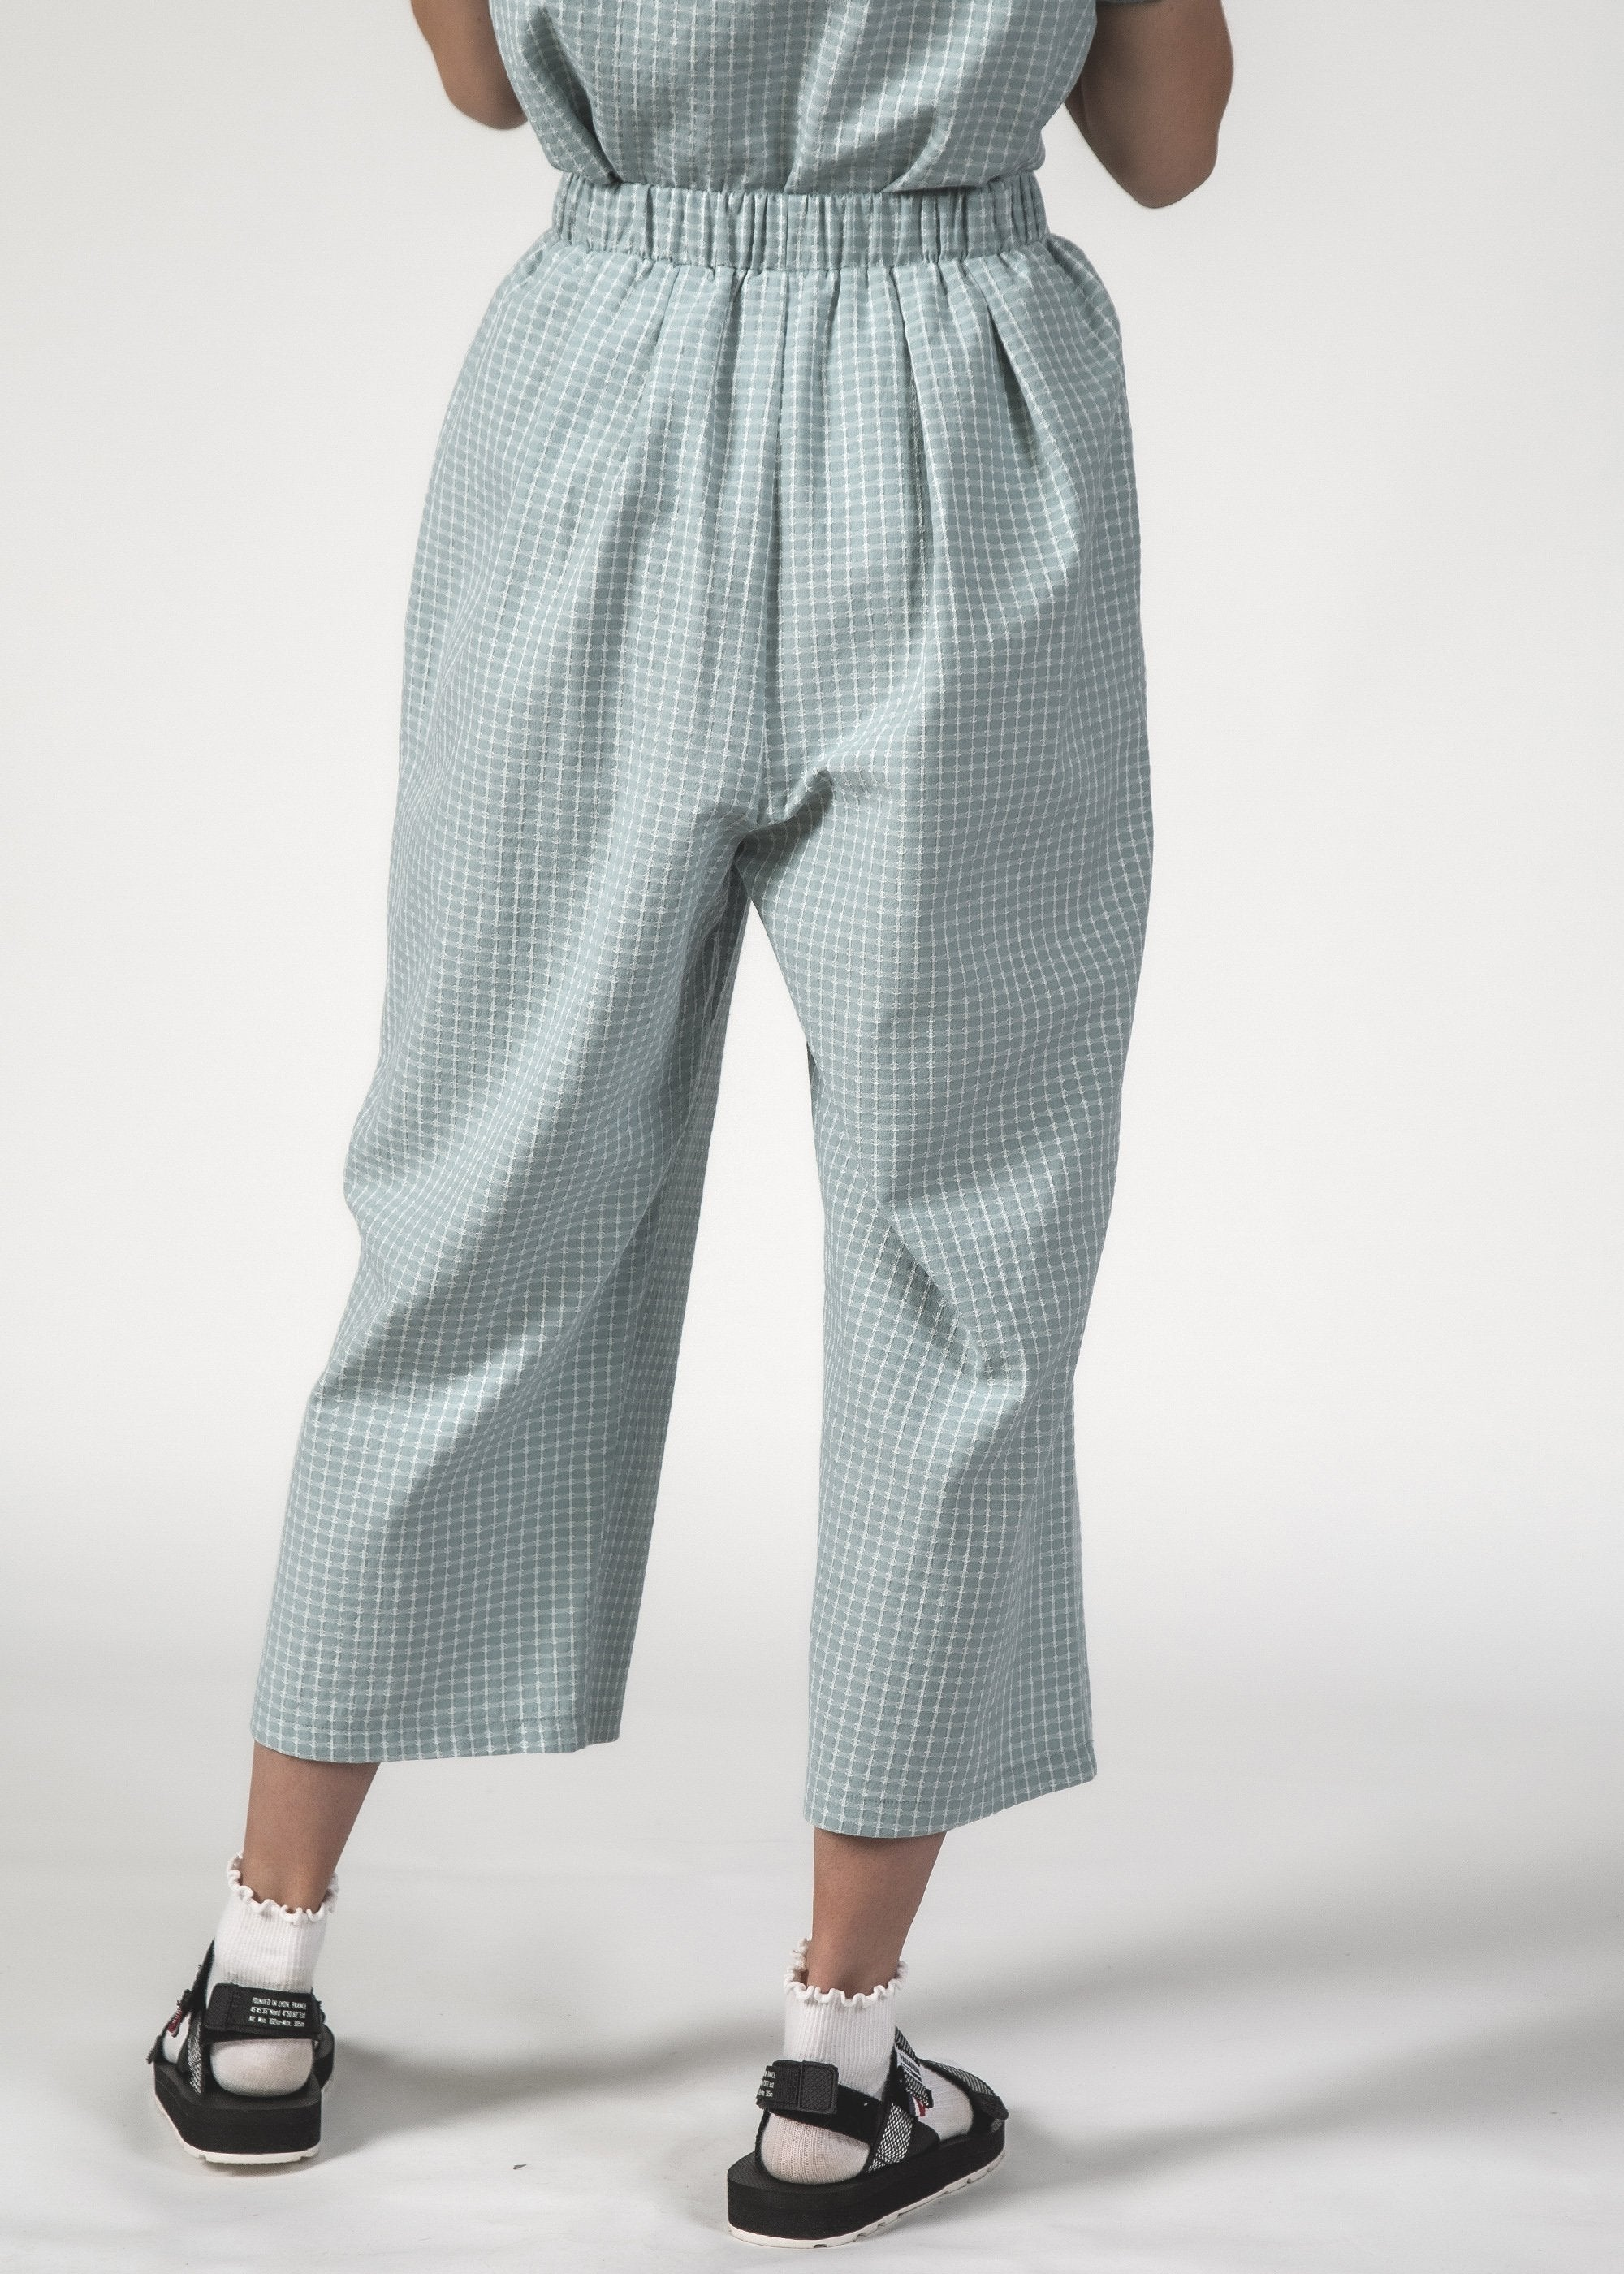 SALE - CRUISE PANT - Sky Crosshatch